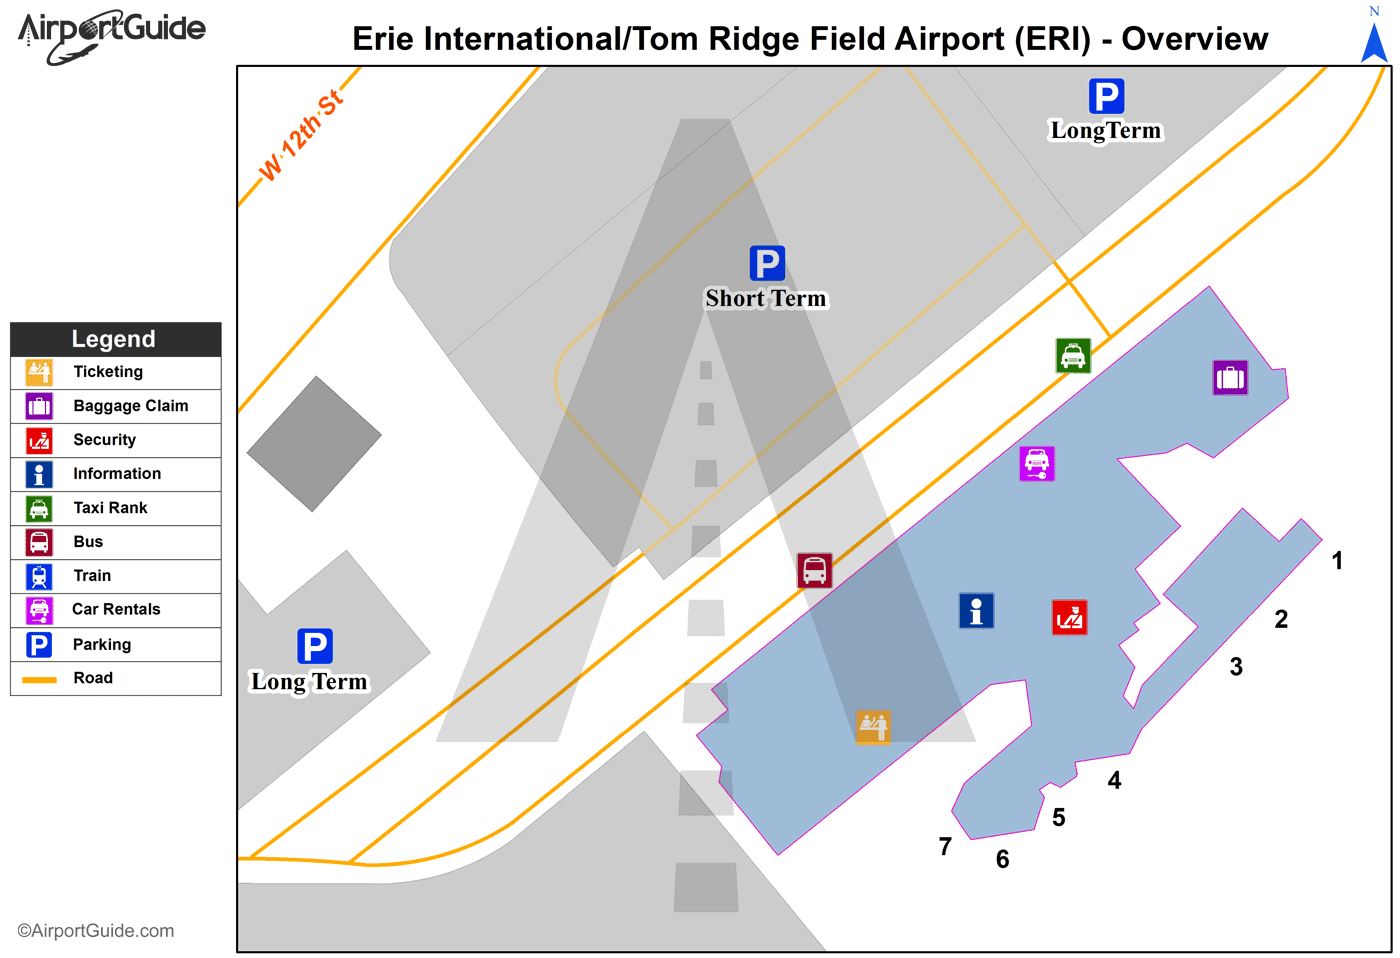 Erie - Erie International/Tom Ridge Field (ERI) Airport Terminal Map - Overview